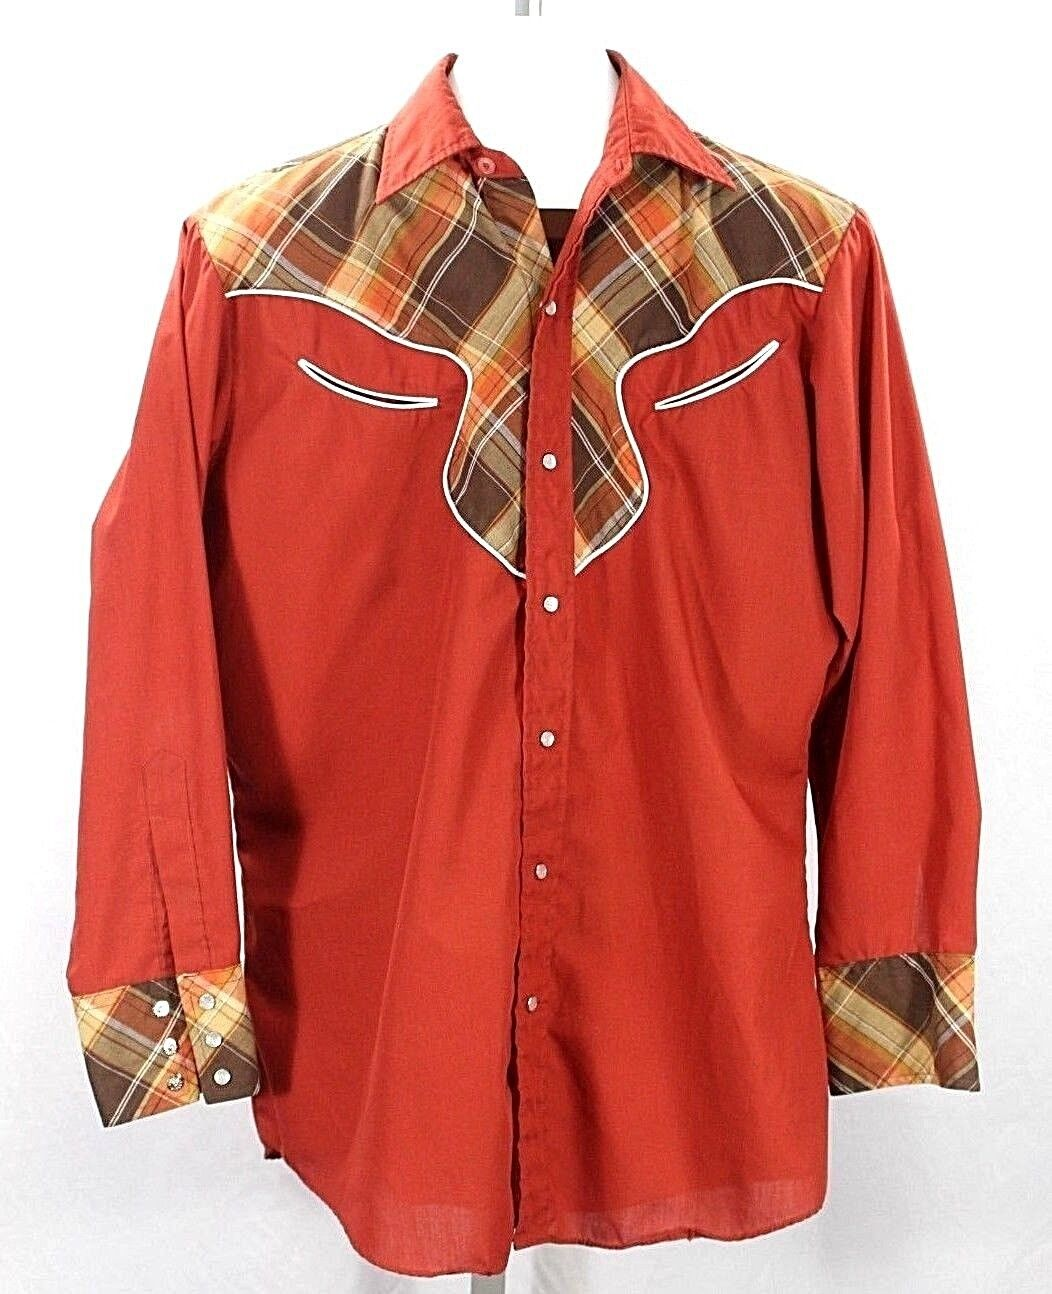 Vintage Ely Plains Western Shirt Pearl Snaps LS Rust Plaid Yolk 15-1 2-33 Korea